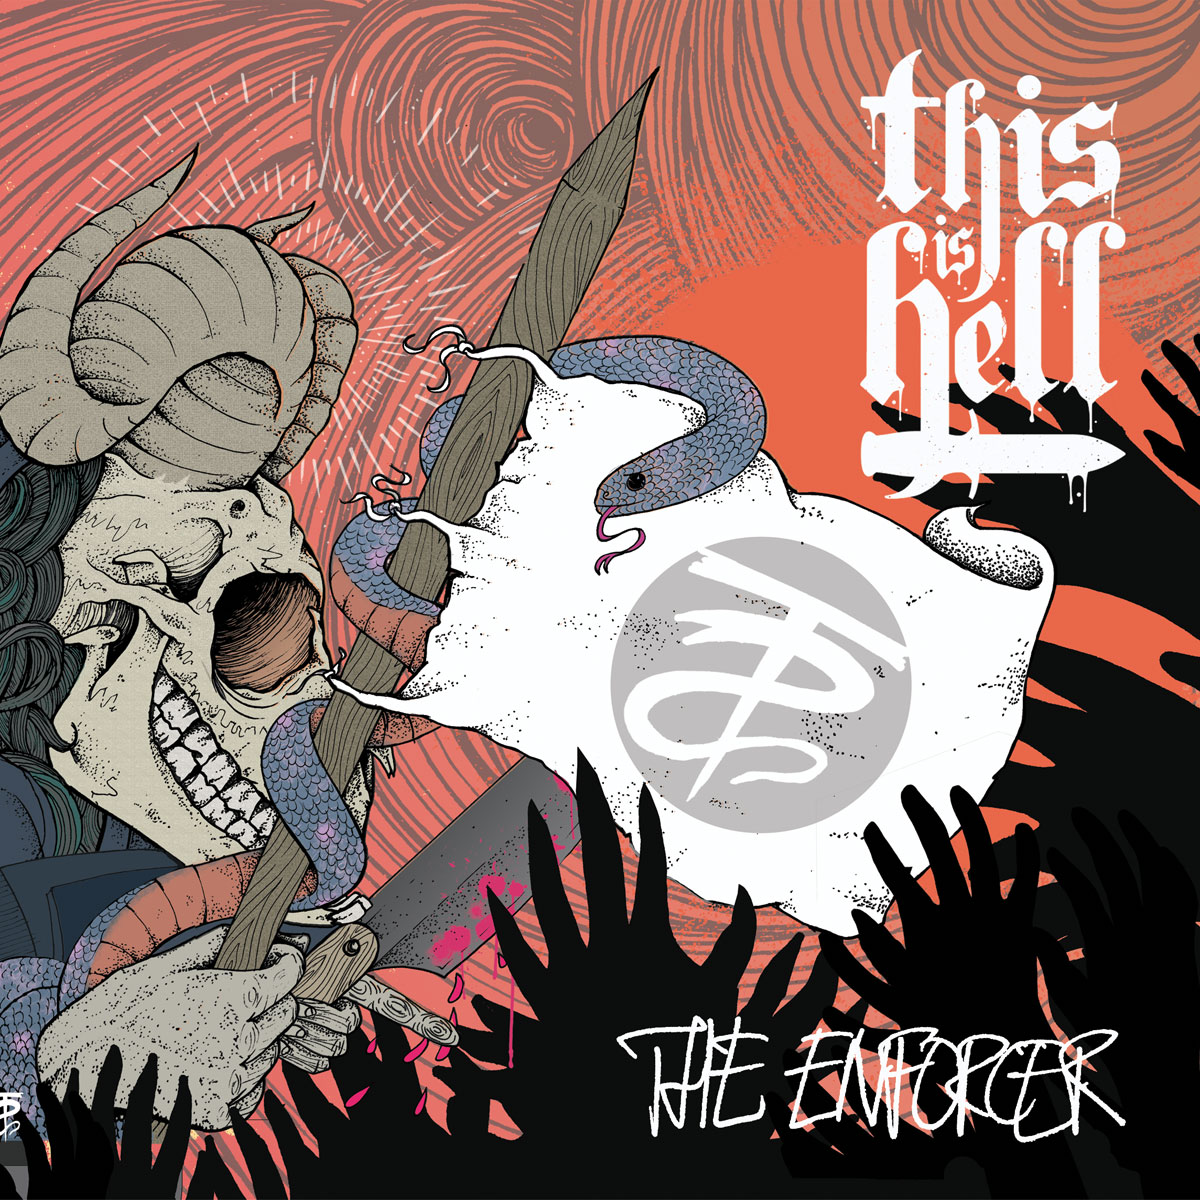 "It's Monday, and we have news that doesn't suck! We're releasing a brand new 7"" from This is Hell! ""The Enforcer"" is out on 2/19 and is limited to 500 copies (300 red, 200 clear). Listen to the title track on  Revolver Magazine's website .     Pre-order the 7"" in our webstore .   Catch the band on tour:   01/21/13 – Baltimore, MD @ Charm City Art Space  01/22/13 – Fayettville, NC @ The Drunk Horse Pub (w/ EVA)  01/23/13 – Atlanta, GA @ Masquerade (w/ EVA)  01/24/13 – Augusta. GA @ Sector 7G (w/ EVA)  01/25/13 – Savannah, GA @ Taco Abajo (w/ EVA)  01/26/13 – Jacksonville, FL @ Phoenix Taproom (w/ EVA)  01/27/13 – Orlando, FL @ Backbooth (w/ letlive.)  01/28/13 – Spartanburg, SC @ Ground Zero (w/ letlive.)  01/29/13 – Wilmington, NC @ Soapbox (w/ letlive.)  01/30/13 – Richmond, VA @ Kingdom (w/ letlive.)  01/31/13 – West Springfield, VA @ Empire (w/ letlive.)  02/01/13 – Brooklyn, NY @ Saint Vitus (w/ letlive.)  02/02/13 – Amityville, NY @ The Spotlight (w/ letlive.)  02/04/13 – Cambridge, MA @ The Sinclair (w/ letlive.)  02/05/13 – Danbury, CT @ Heirloom Arts (w/ letlive.)  02/06/13 – Montreal, QC @ La Sala Rossa (w/ letlive.)  02/07/13 – Ottawa, ON @ Mavericks (w/ letlive.)  02/08/13 – London, ON @ Call The Office (w/ letlive.)  02/09/13 – Pittsburgh, PA @ Smiling Moose (w/ letlive.)  02/10/13 – Toledo, OH @ Frankies (w/ letlive.)  02/20/13 – Honolulu, HI @ Hawaiian Brian's  02/23/13 – Brisbane, AUS @ RNA Showgrounds (w/ Soundwave)  02/24/13 – Sydney, AUS @ Olympic Park (w/ Soundwave)  03/01/13 – Melbourne, AUS @ Flemington Racecourse (w/ Soundwave)  03/02/13 – Adelaide, AUS @ Bonython Park (w/ Soundwave)  03/04/13 – Perth, AUS @ Claremont Showground (w/ Soundwave)  03/06/13 – Auckland, NZ @ Zeal Art Room  03/08/13 – Medan, Indonesia @ USU Student Hall  03/09/13 – Kuala Lumpur, Malaysia @ Black Box (w/ Sick Of It All)  03/10/13 – Singapore, Singapore @ Emily Hill  03/12/13 – Bangkok, Thailand @ Immortal Bar  03/16/13 – Grand Prairie, TX @ South By So What Festival  04/13/13 – Toledo, OH @ Jamboree Festival"